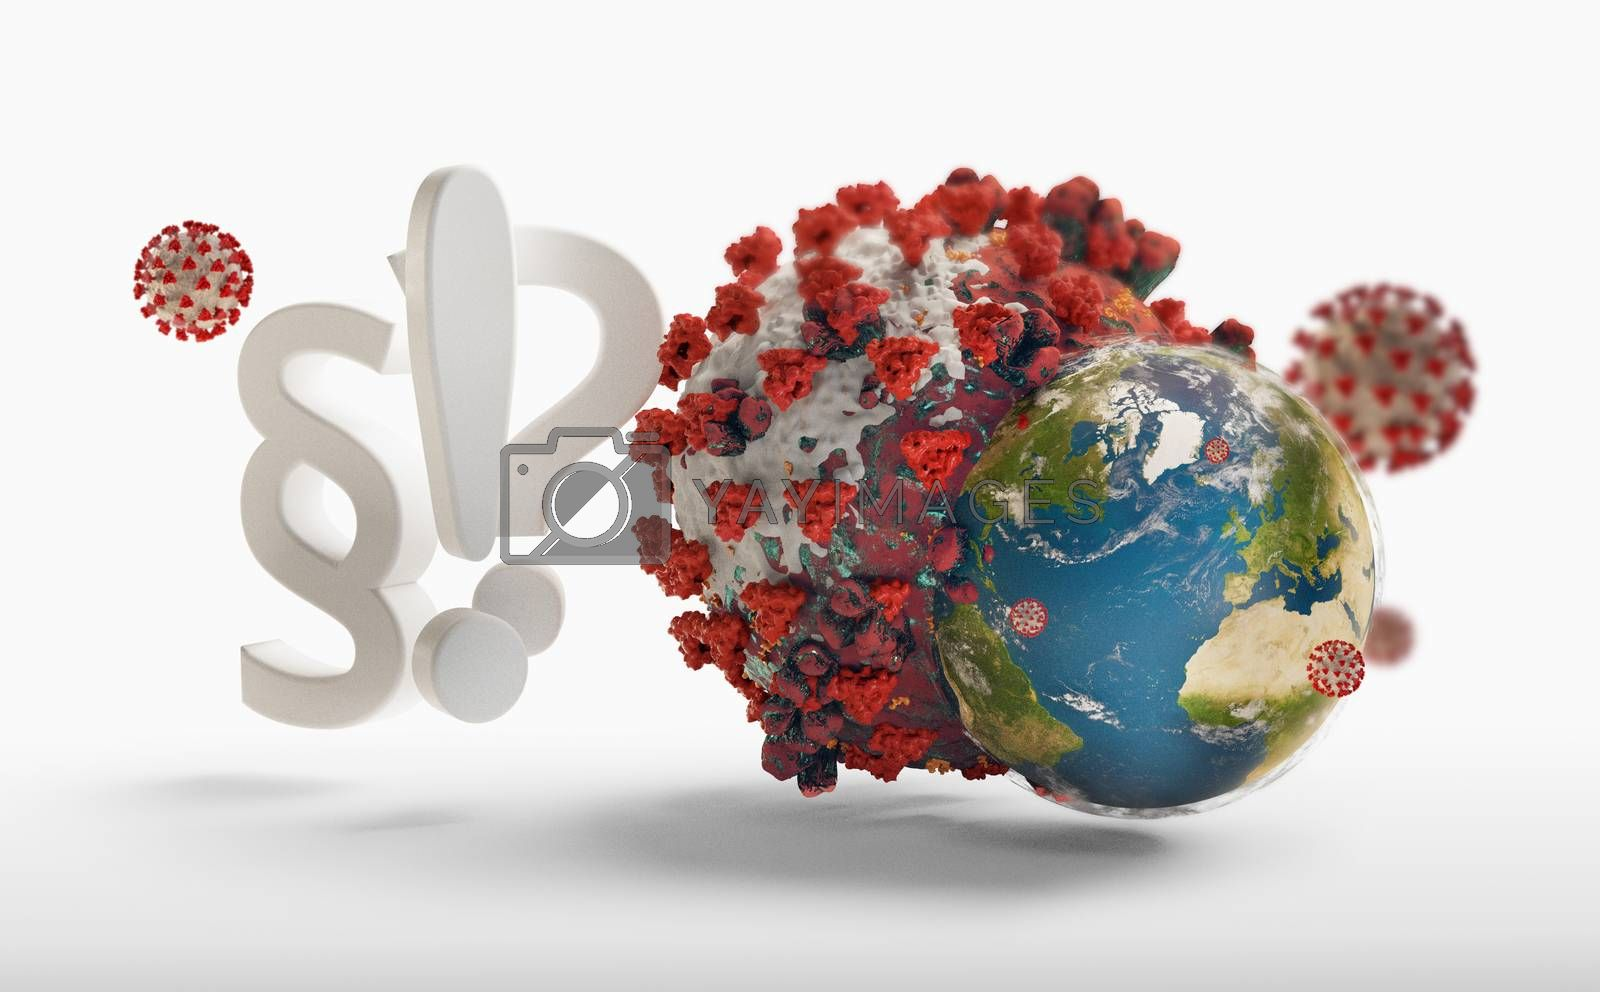 question mark and exclamation mark Concept of SARS-CoV-2 2019-ncov Coronavirus 3d-illustration. elements of this image furnished by NASA